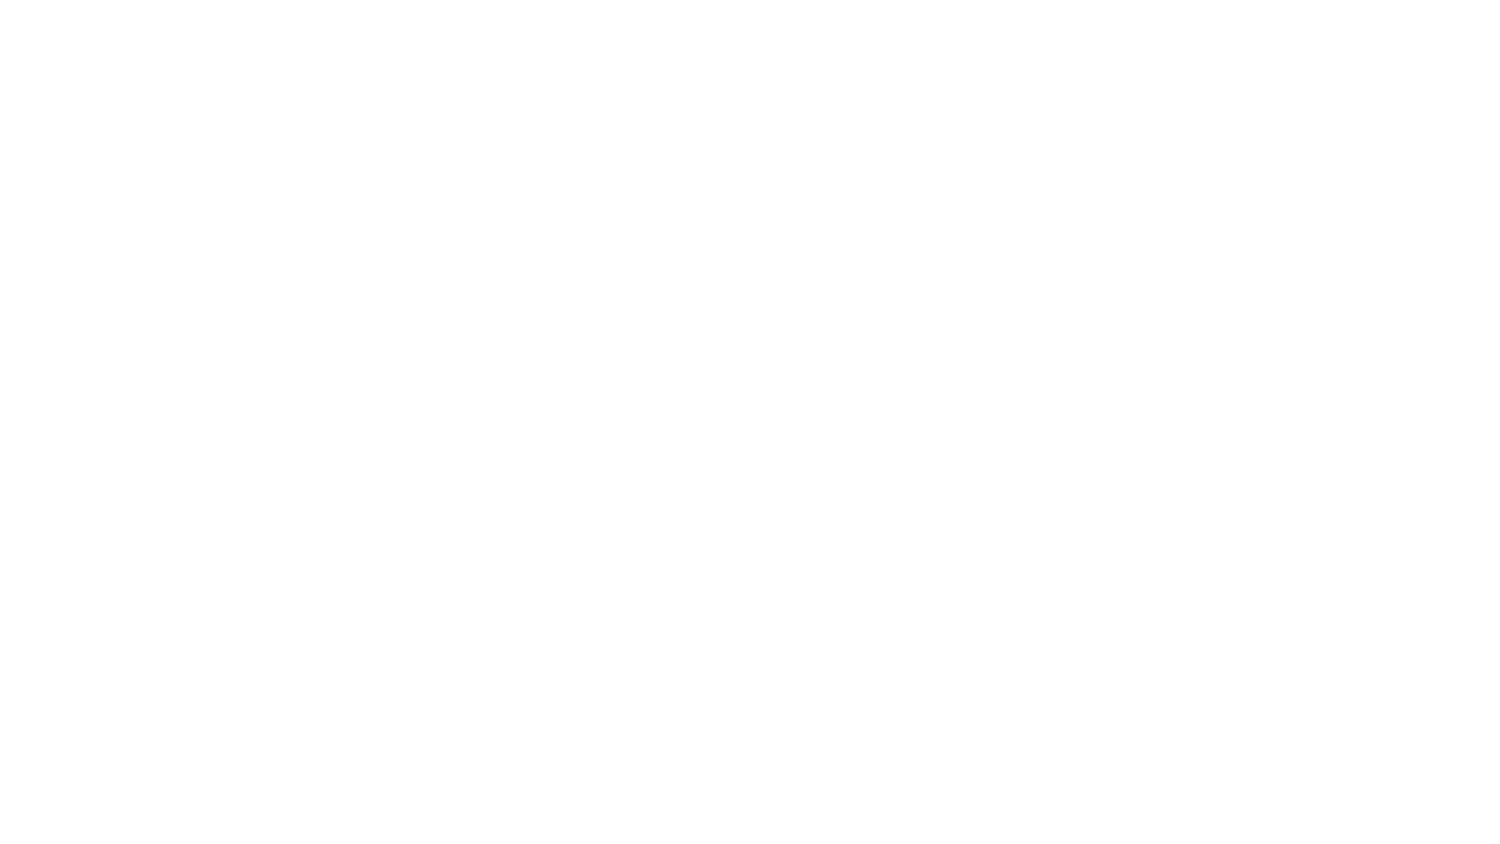 THE INVEST BELIZE MAGAZINE